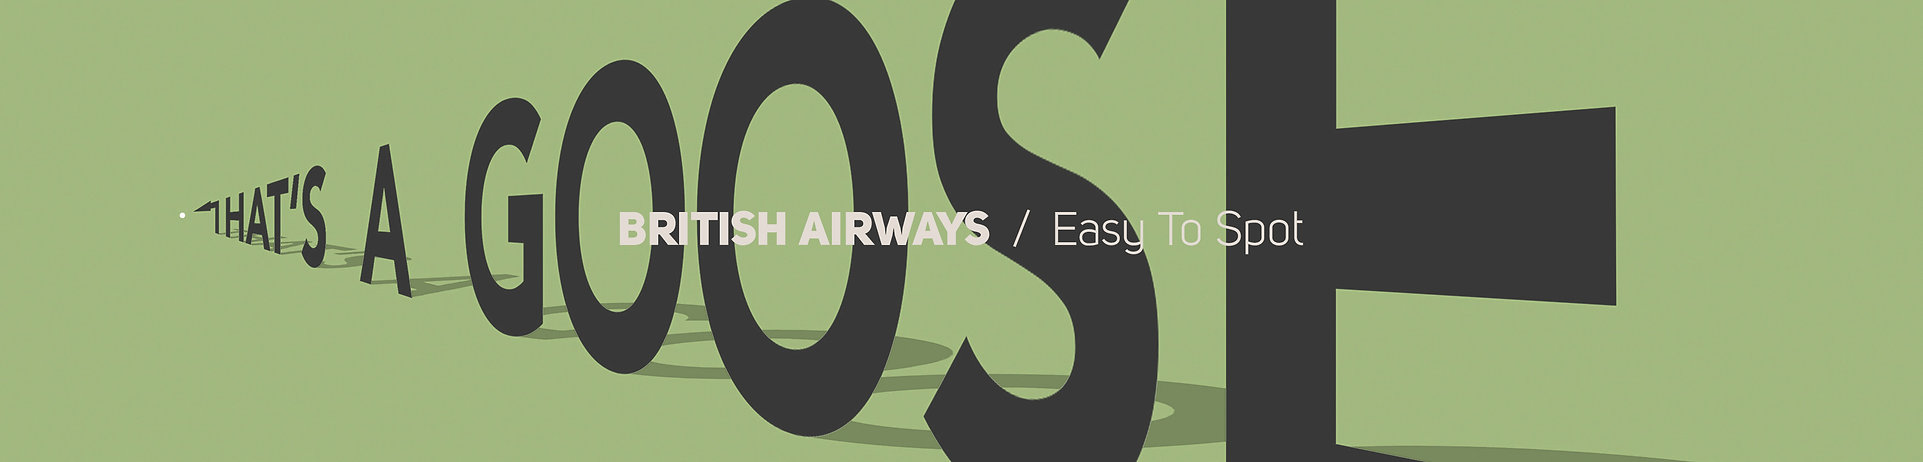 British Airways - Easy To Spot